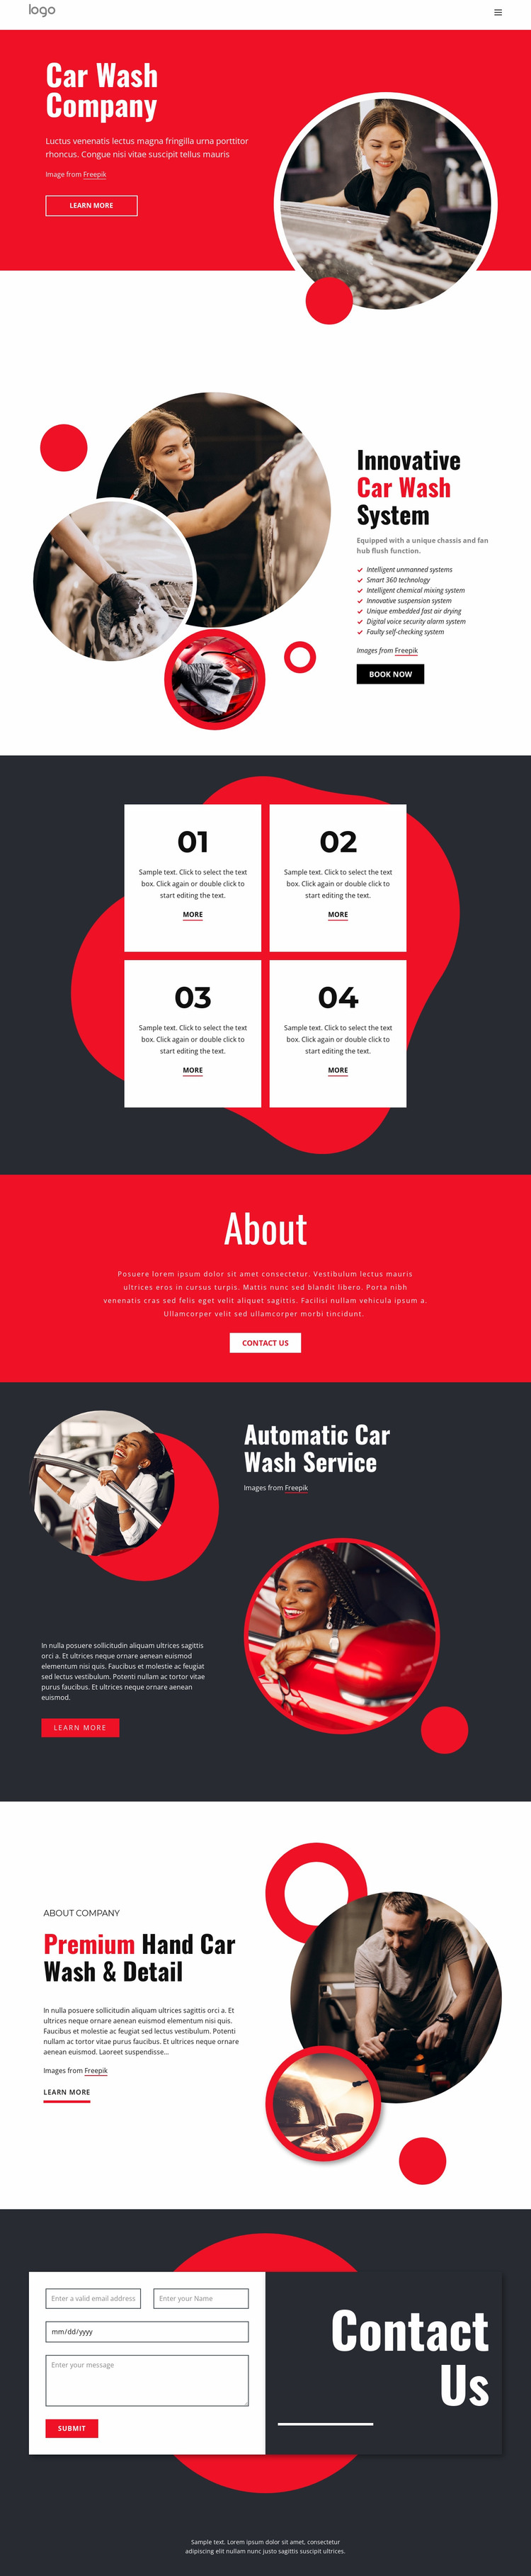 Ecologically friendly car washing Website Mockup